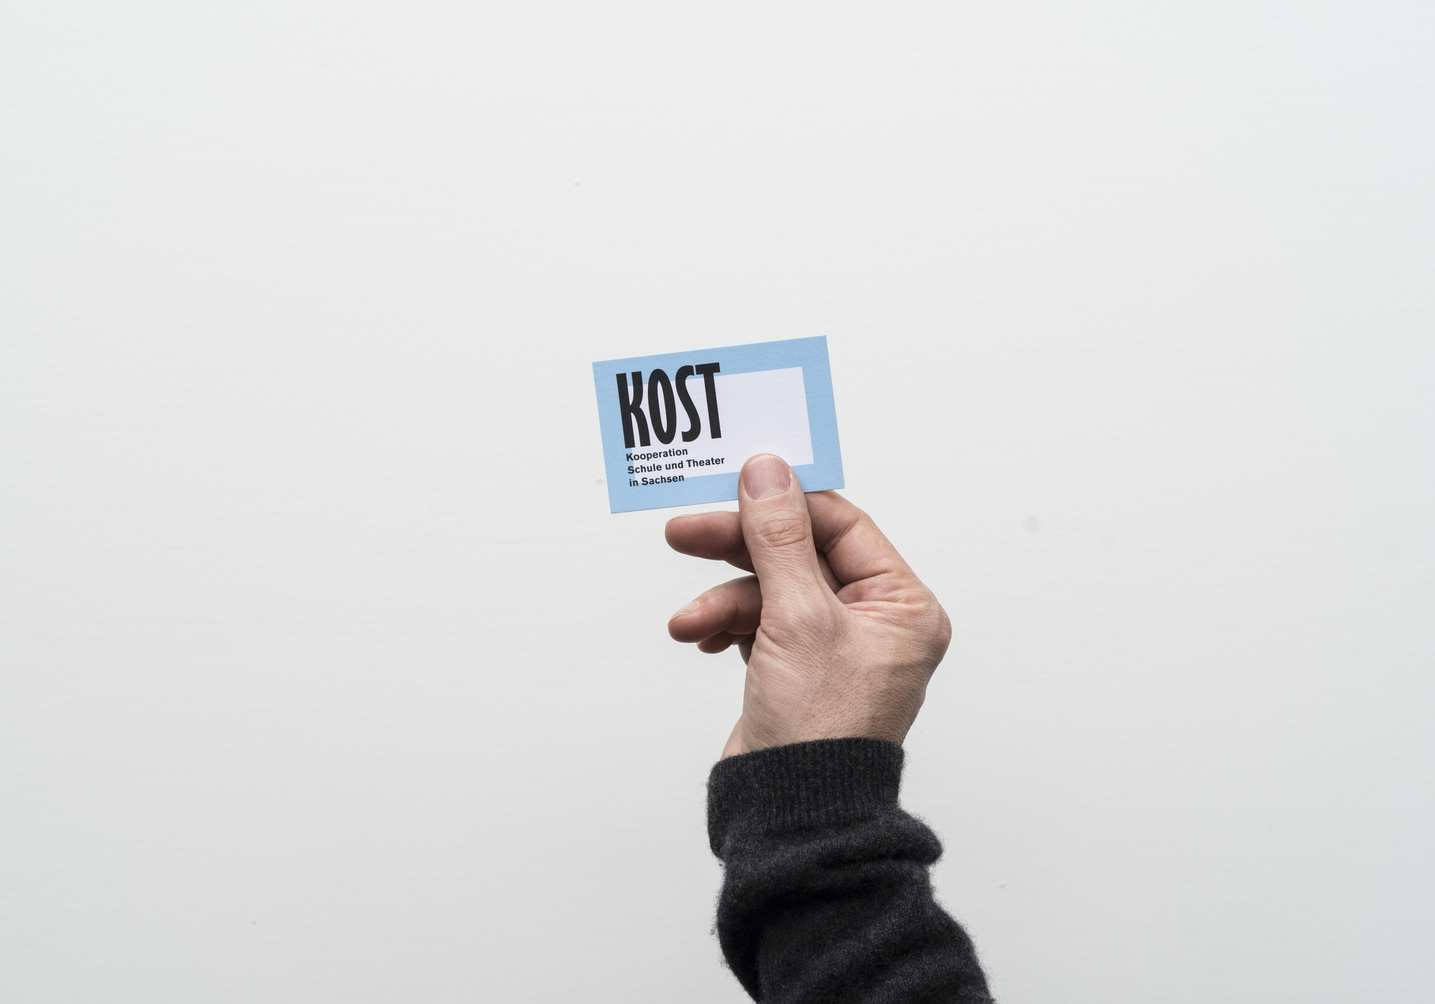 kost-business-card-3-1435x1004px